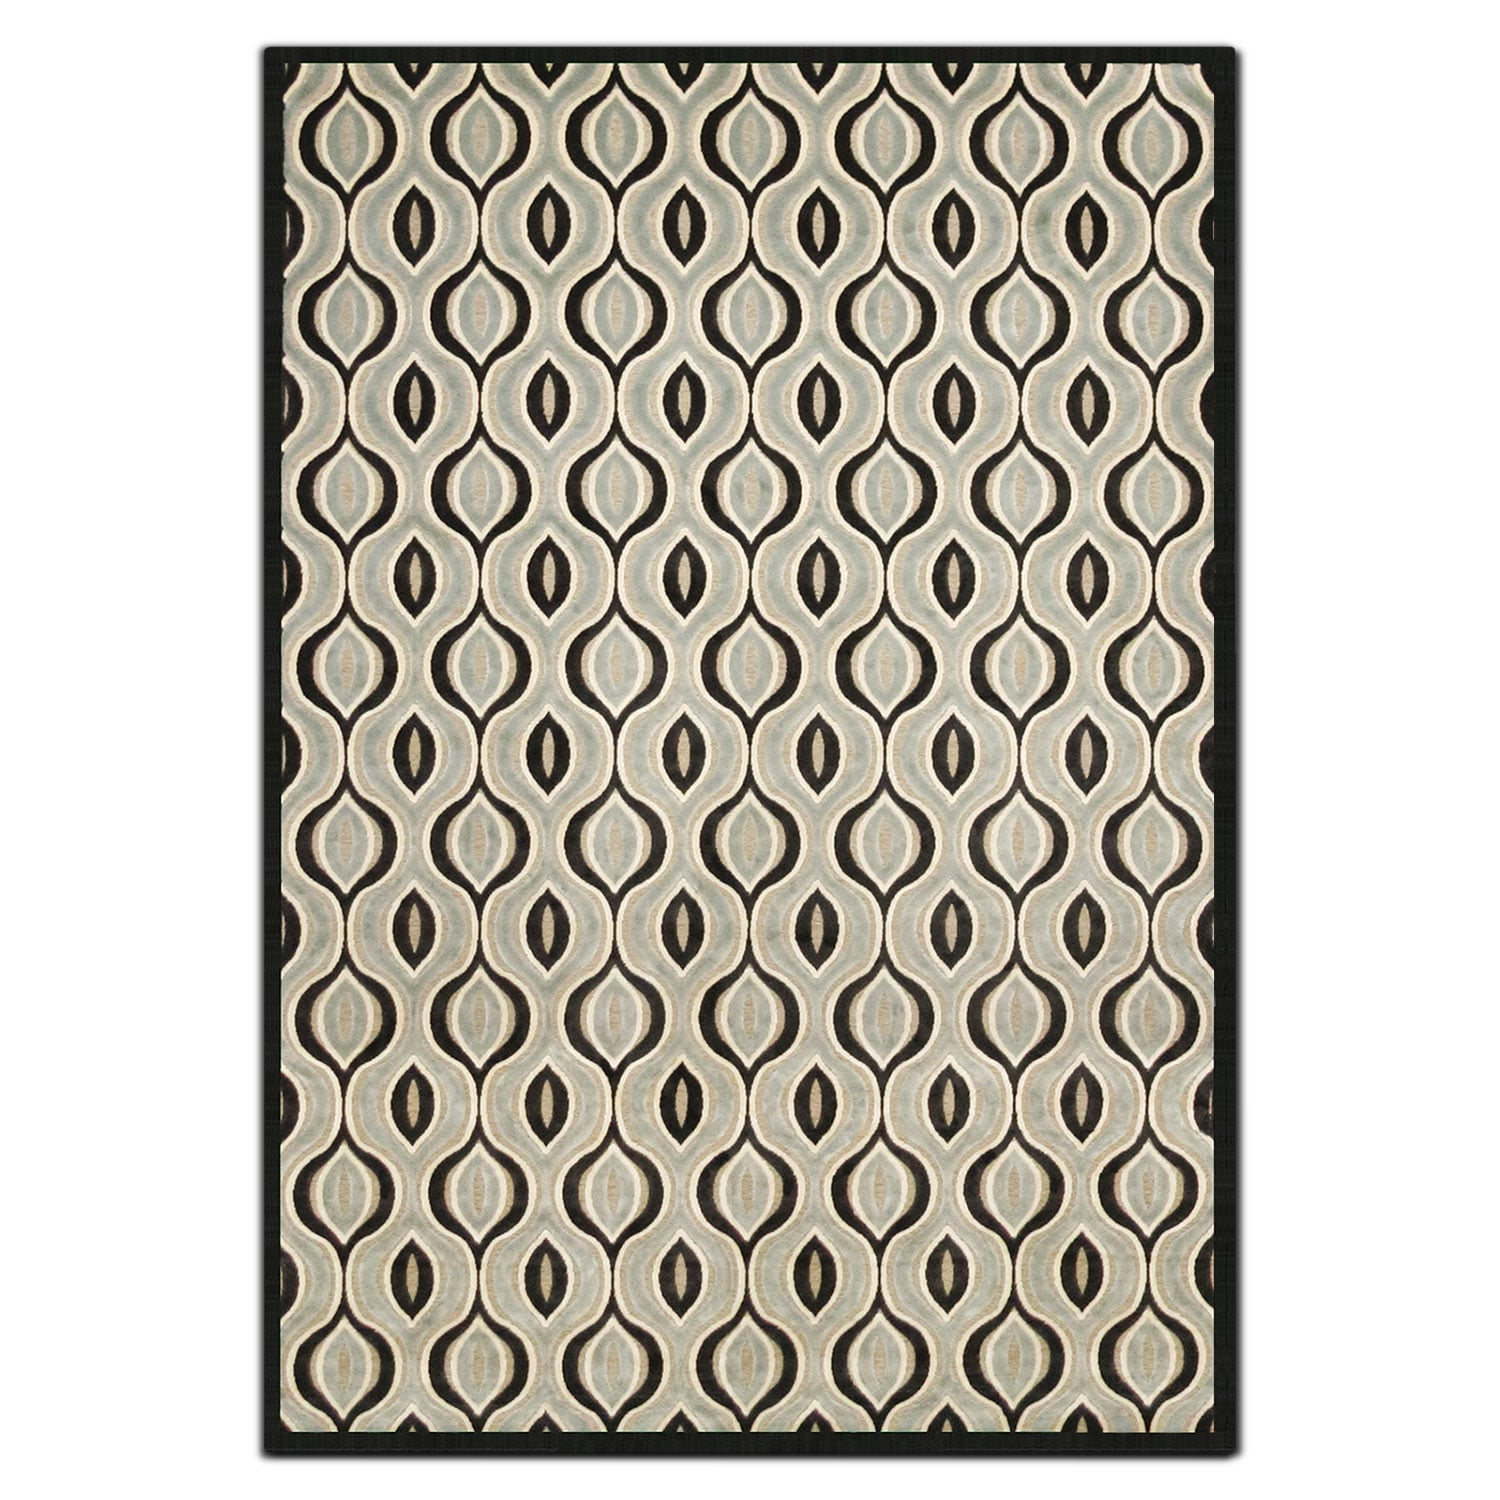 Rugs - Napa 8' x 10' Area Rug - Black and Aqua